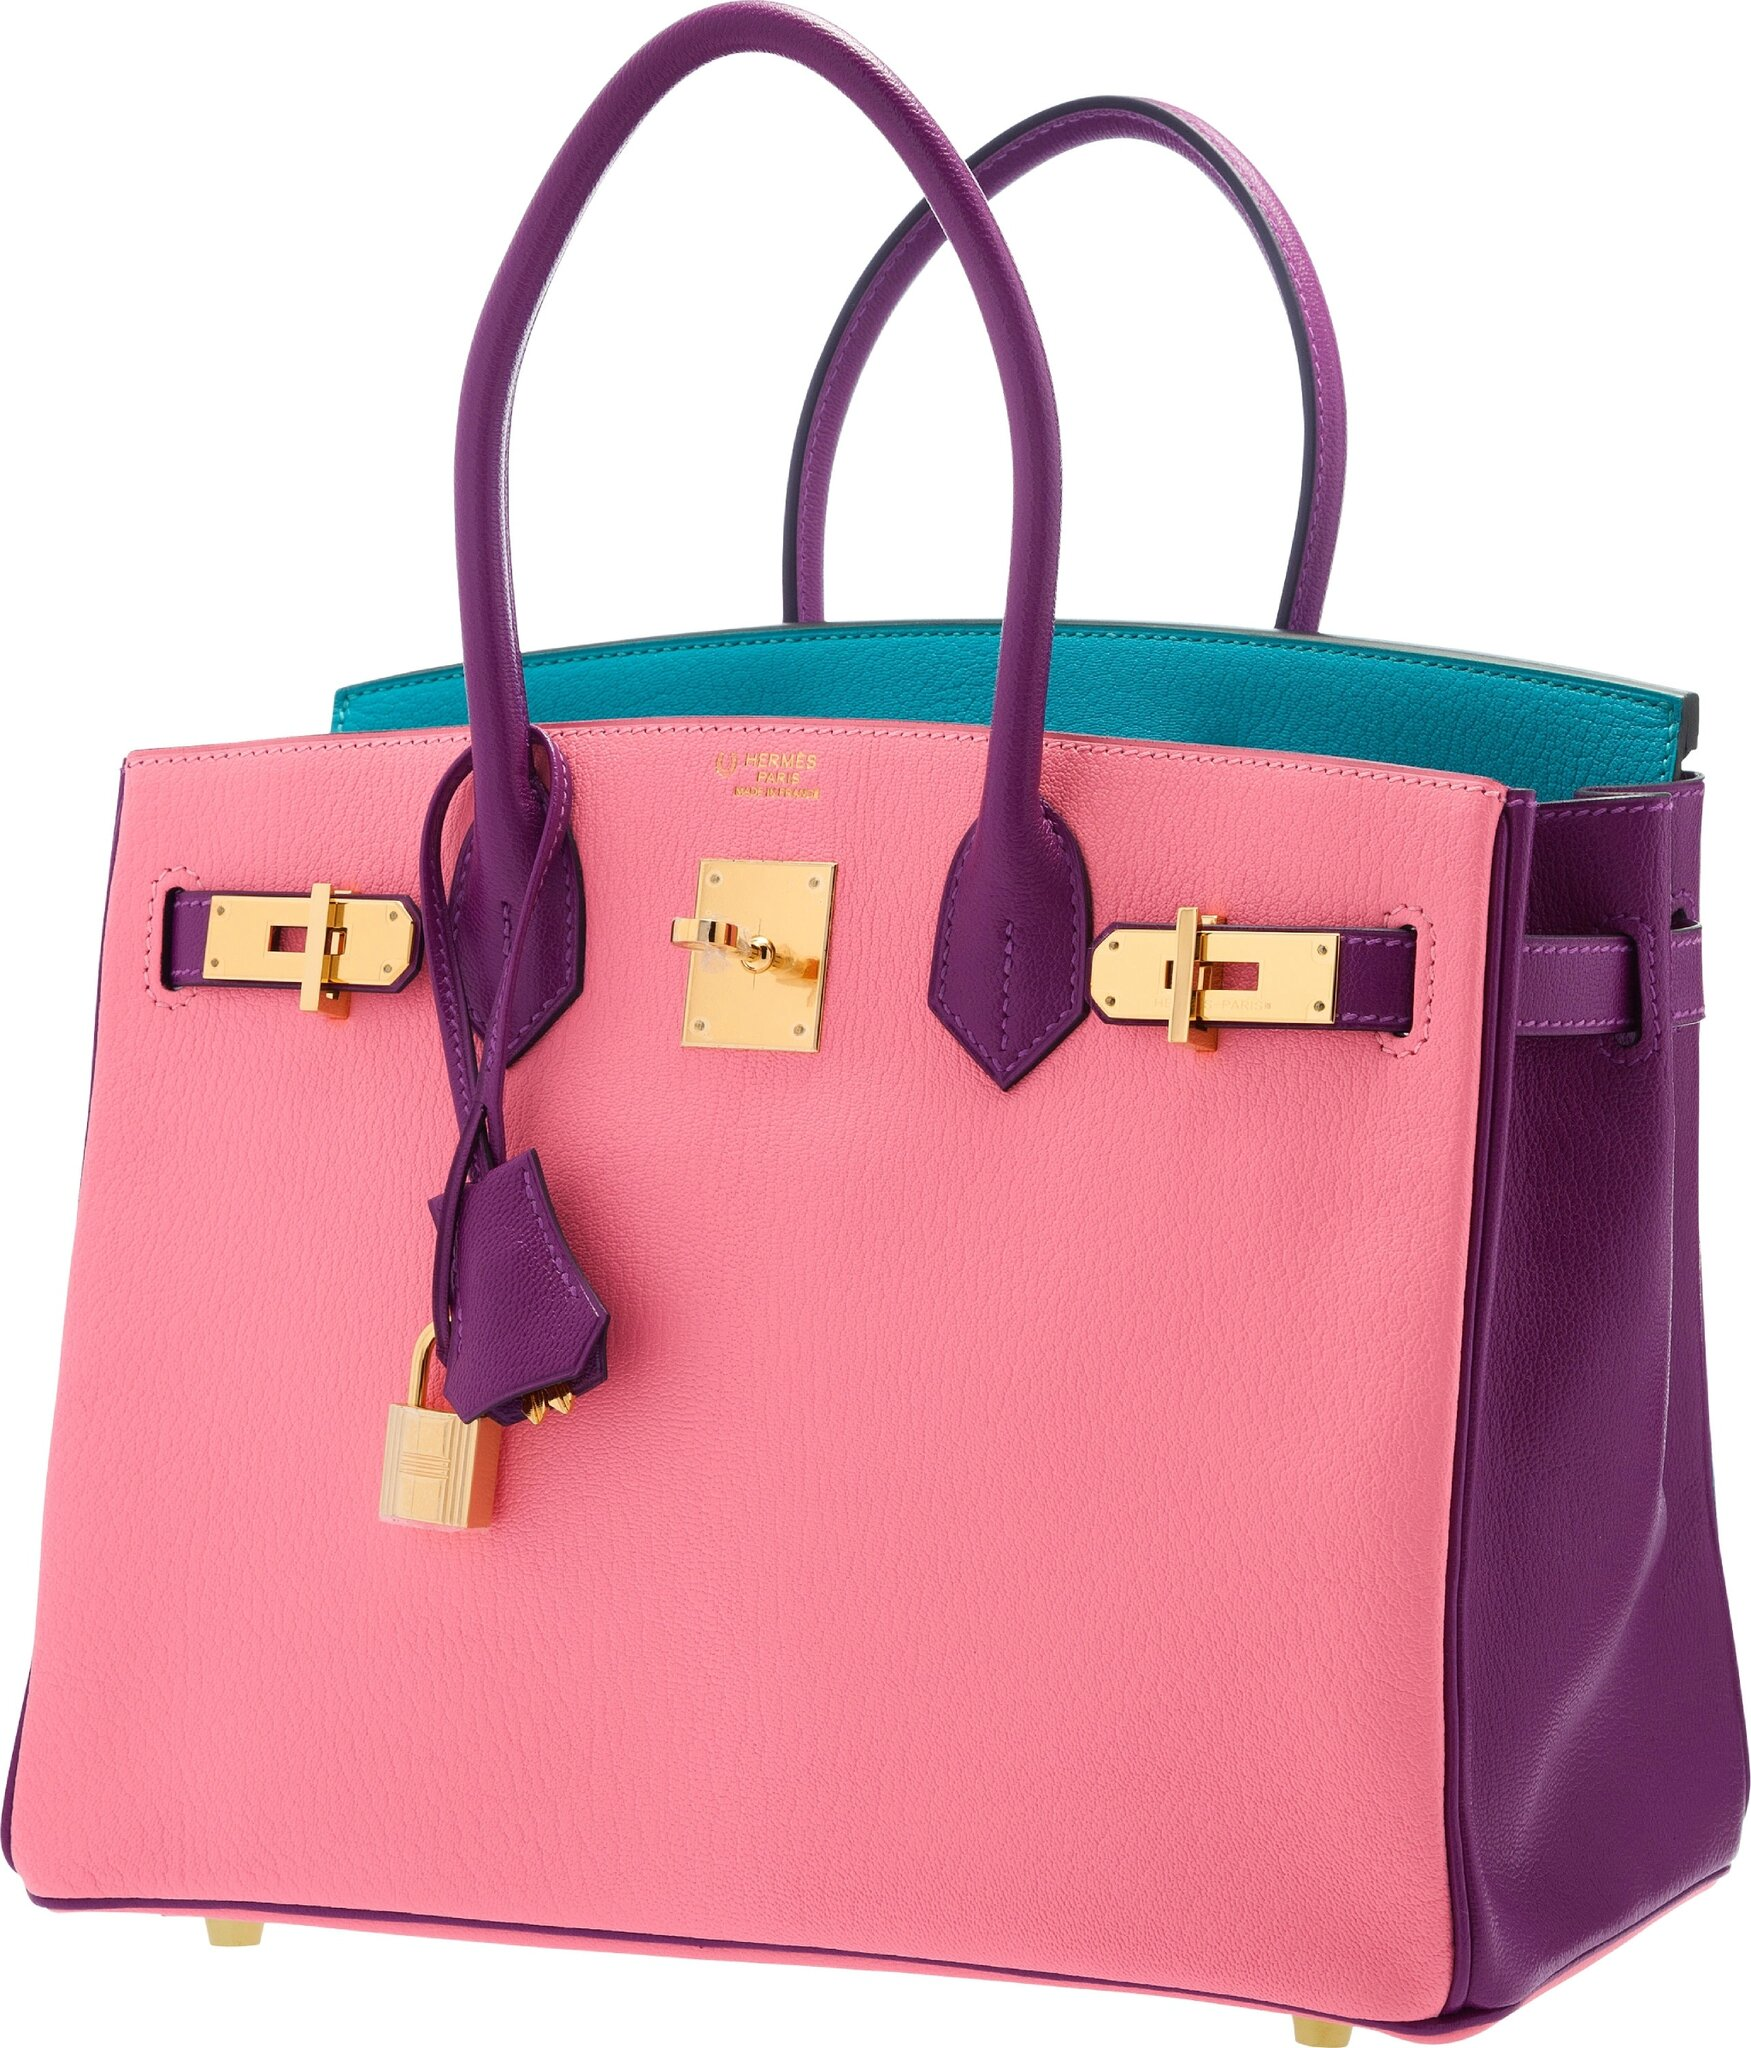 Hermès rarities   Holiday Luxury at Heritage Auctions  accessories ... 9a1833d16f59b